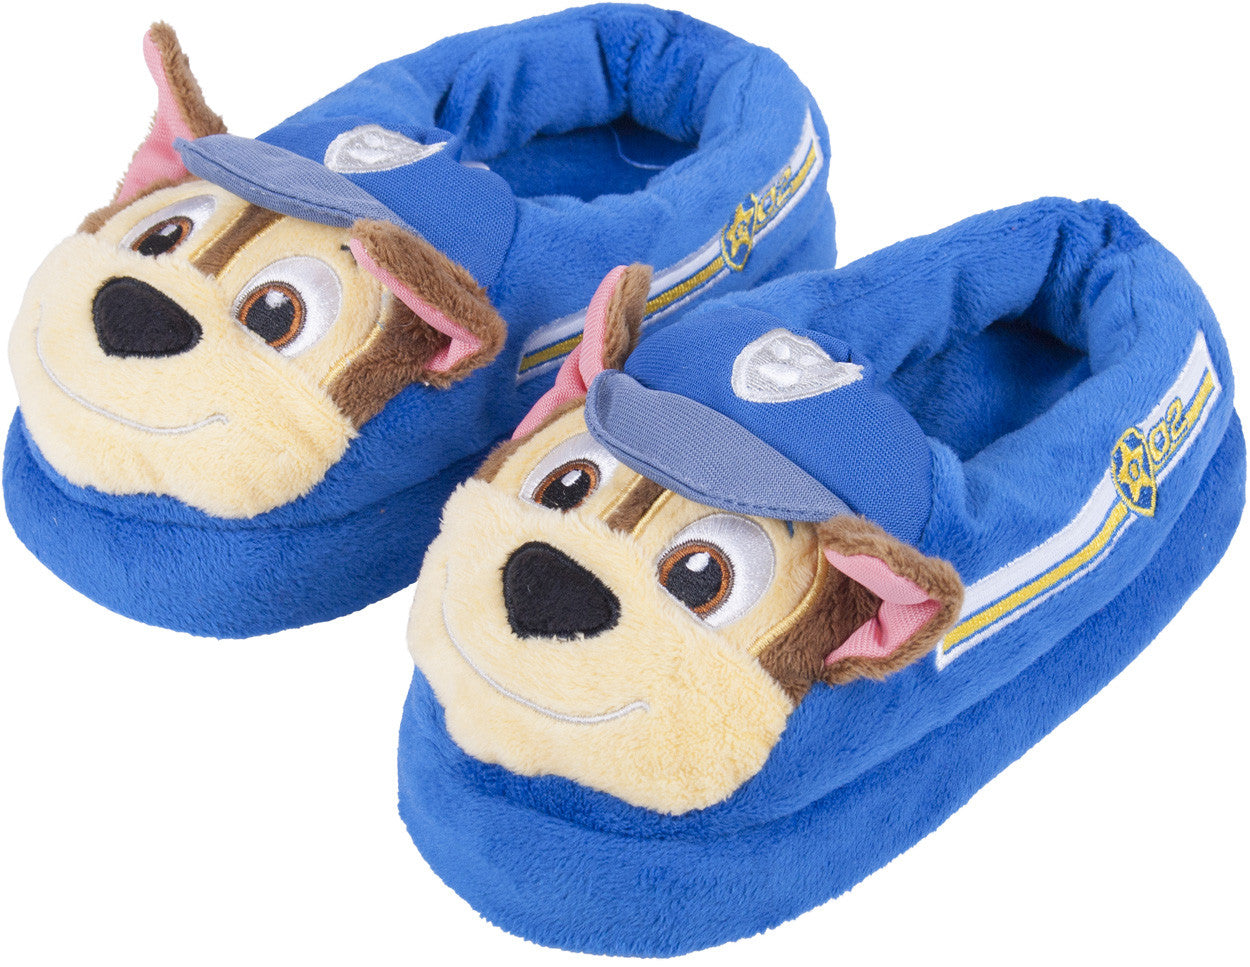 Paw Patrol Chase Slippers - Toddler - nickelodeonstore.co.uk